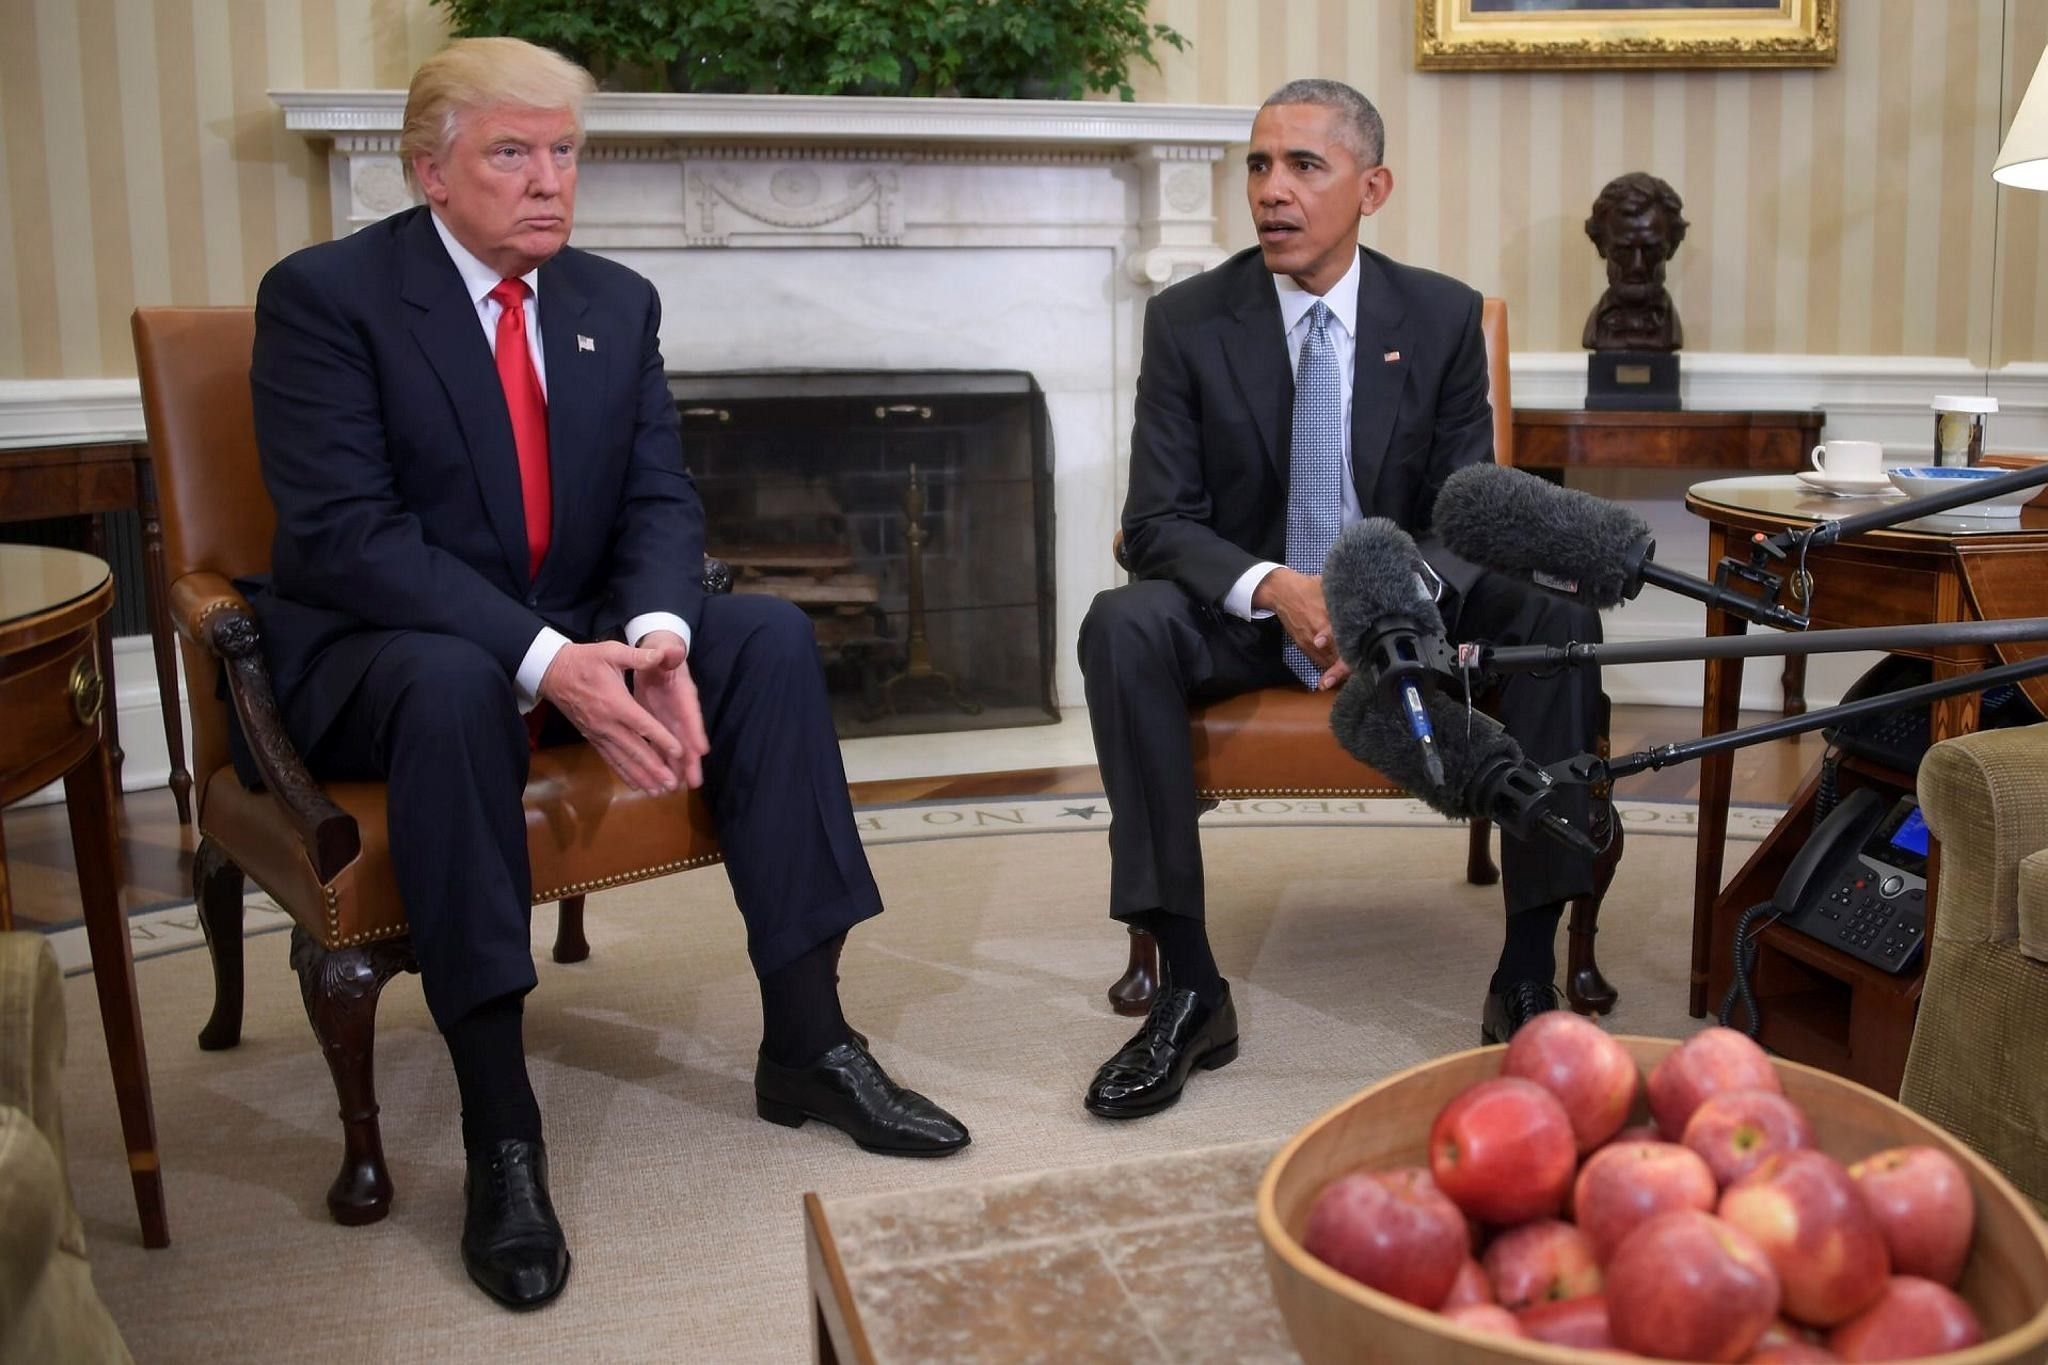 US President Barack Obama meetS with President-elect Donald Trump in the Oval Office at the White House in Washington, DC.